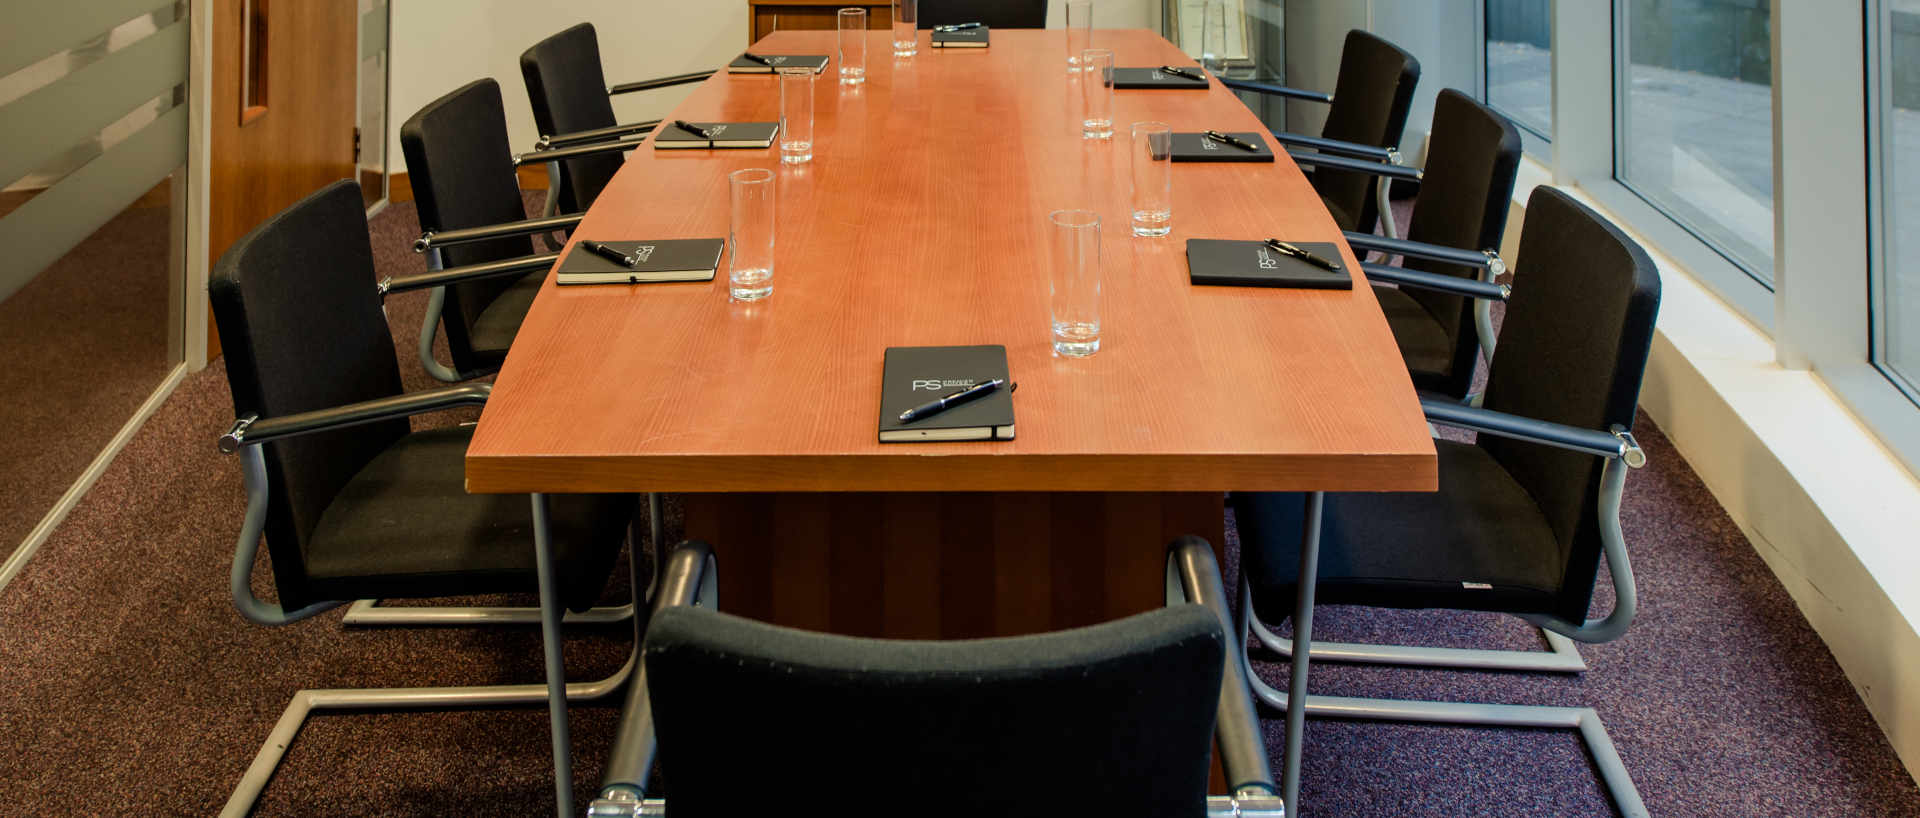 PREMIER SUITES PLUS Liverpool conference room